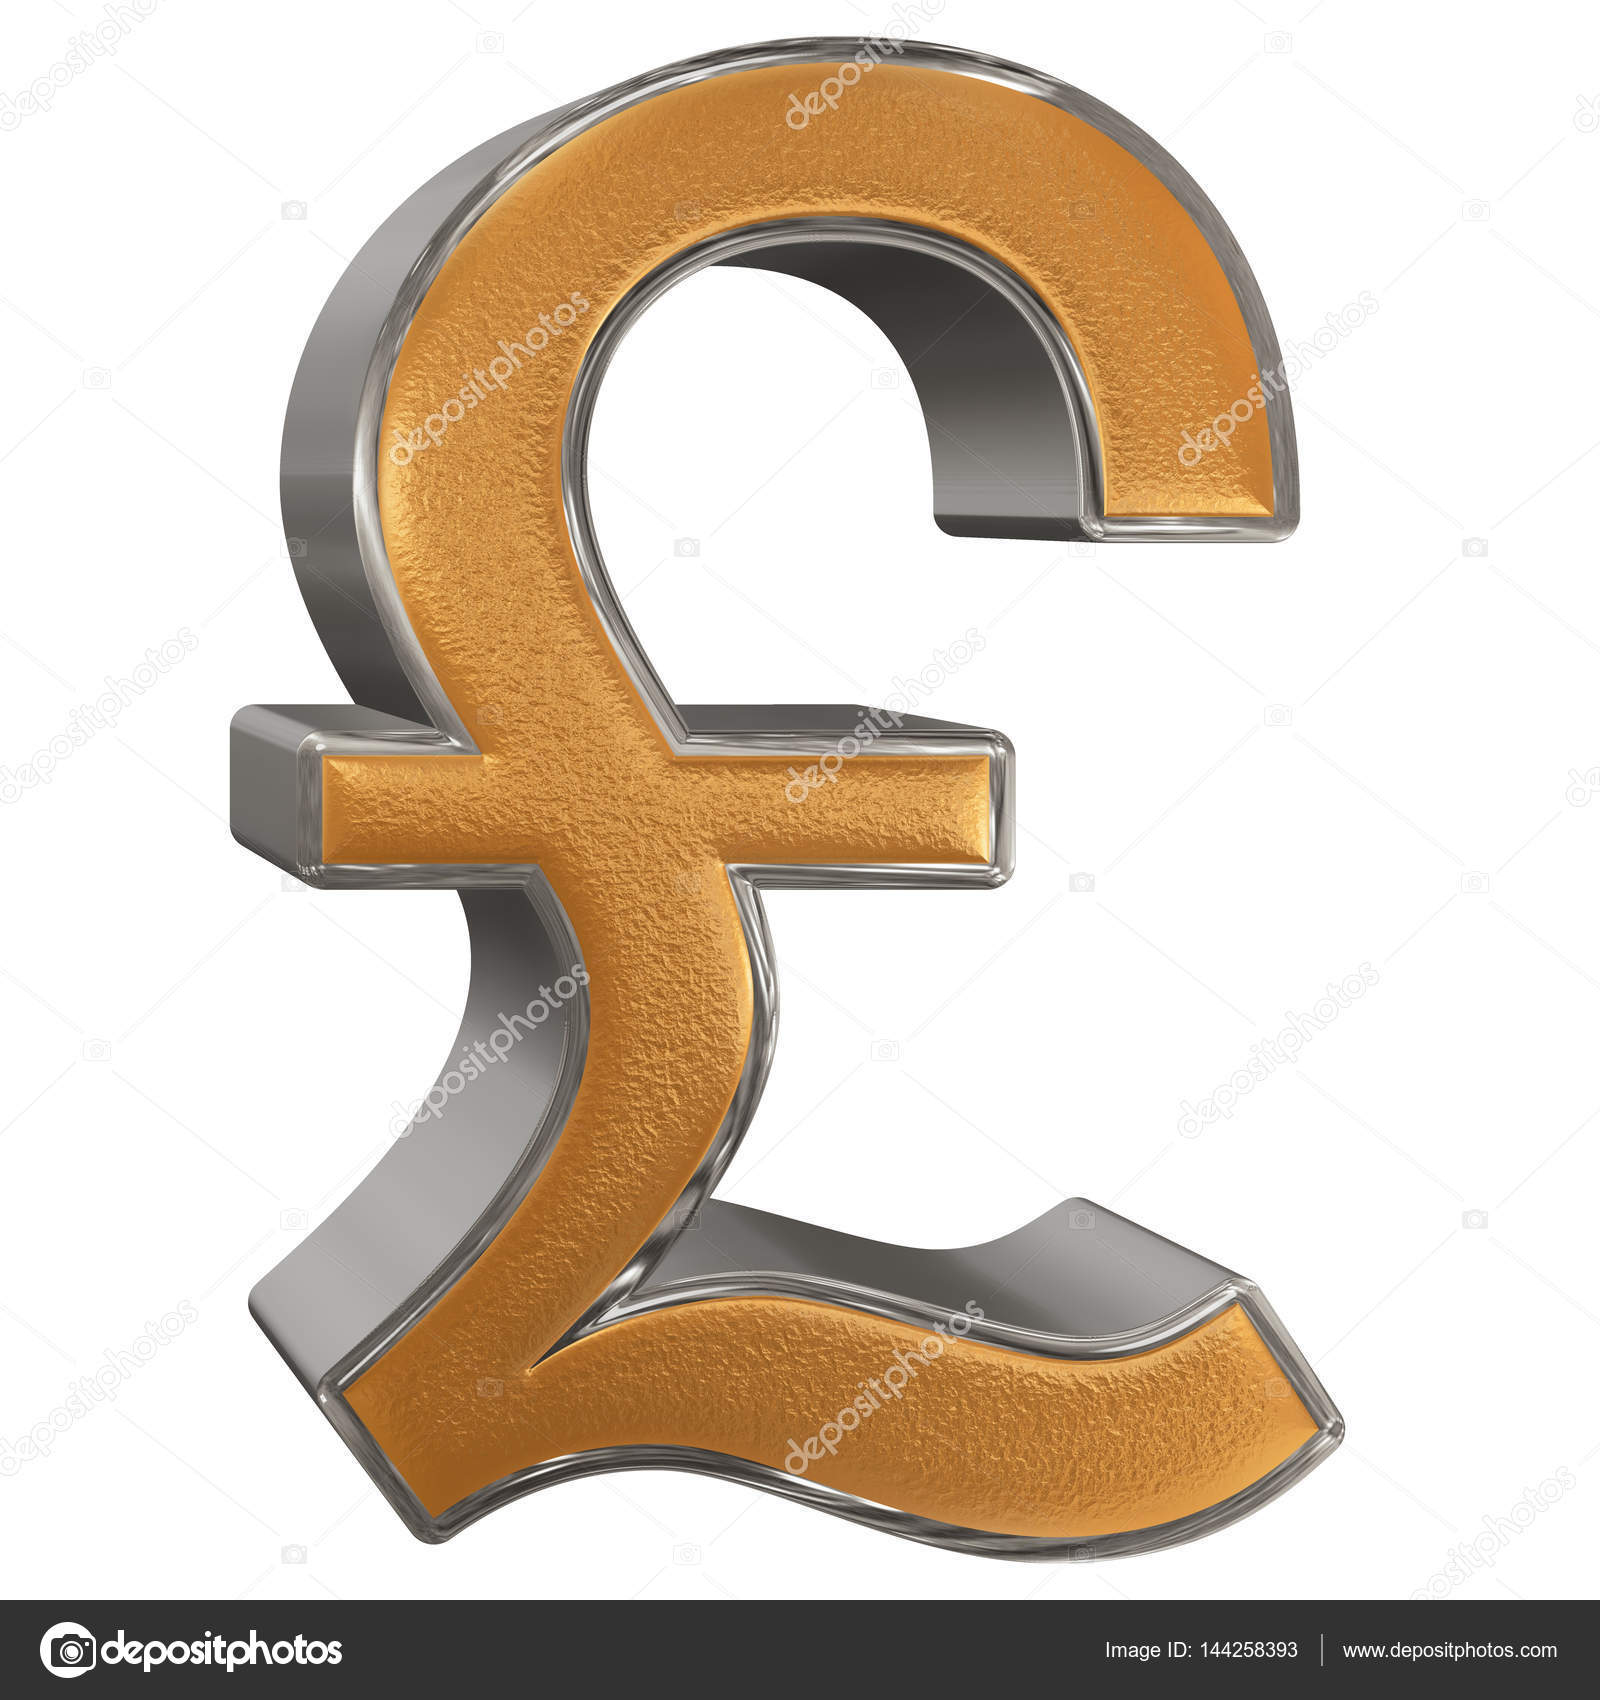 Symbol of british pound sterling isolated on white background symbol of british pound sterling isolated on white background stock photo 144258393 biocorpaavc Gallery